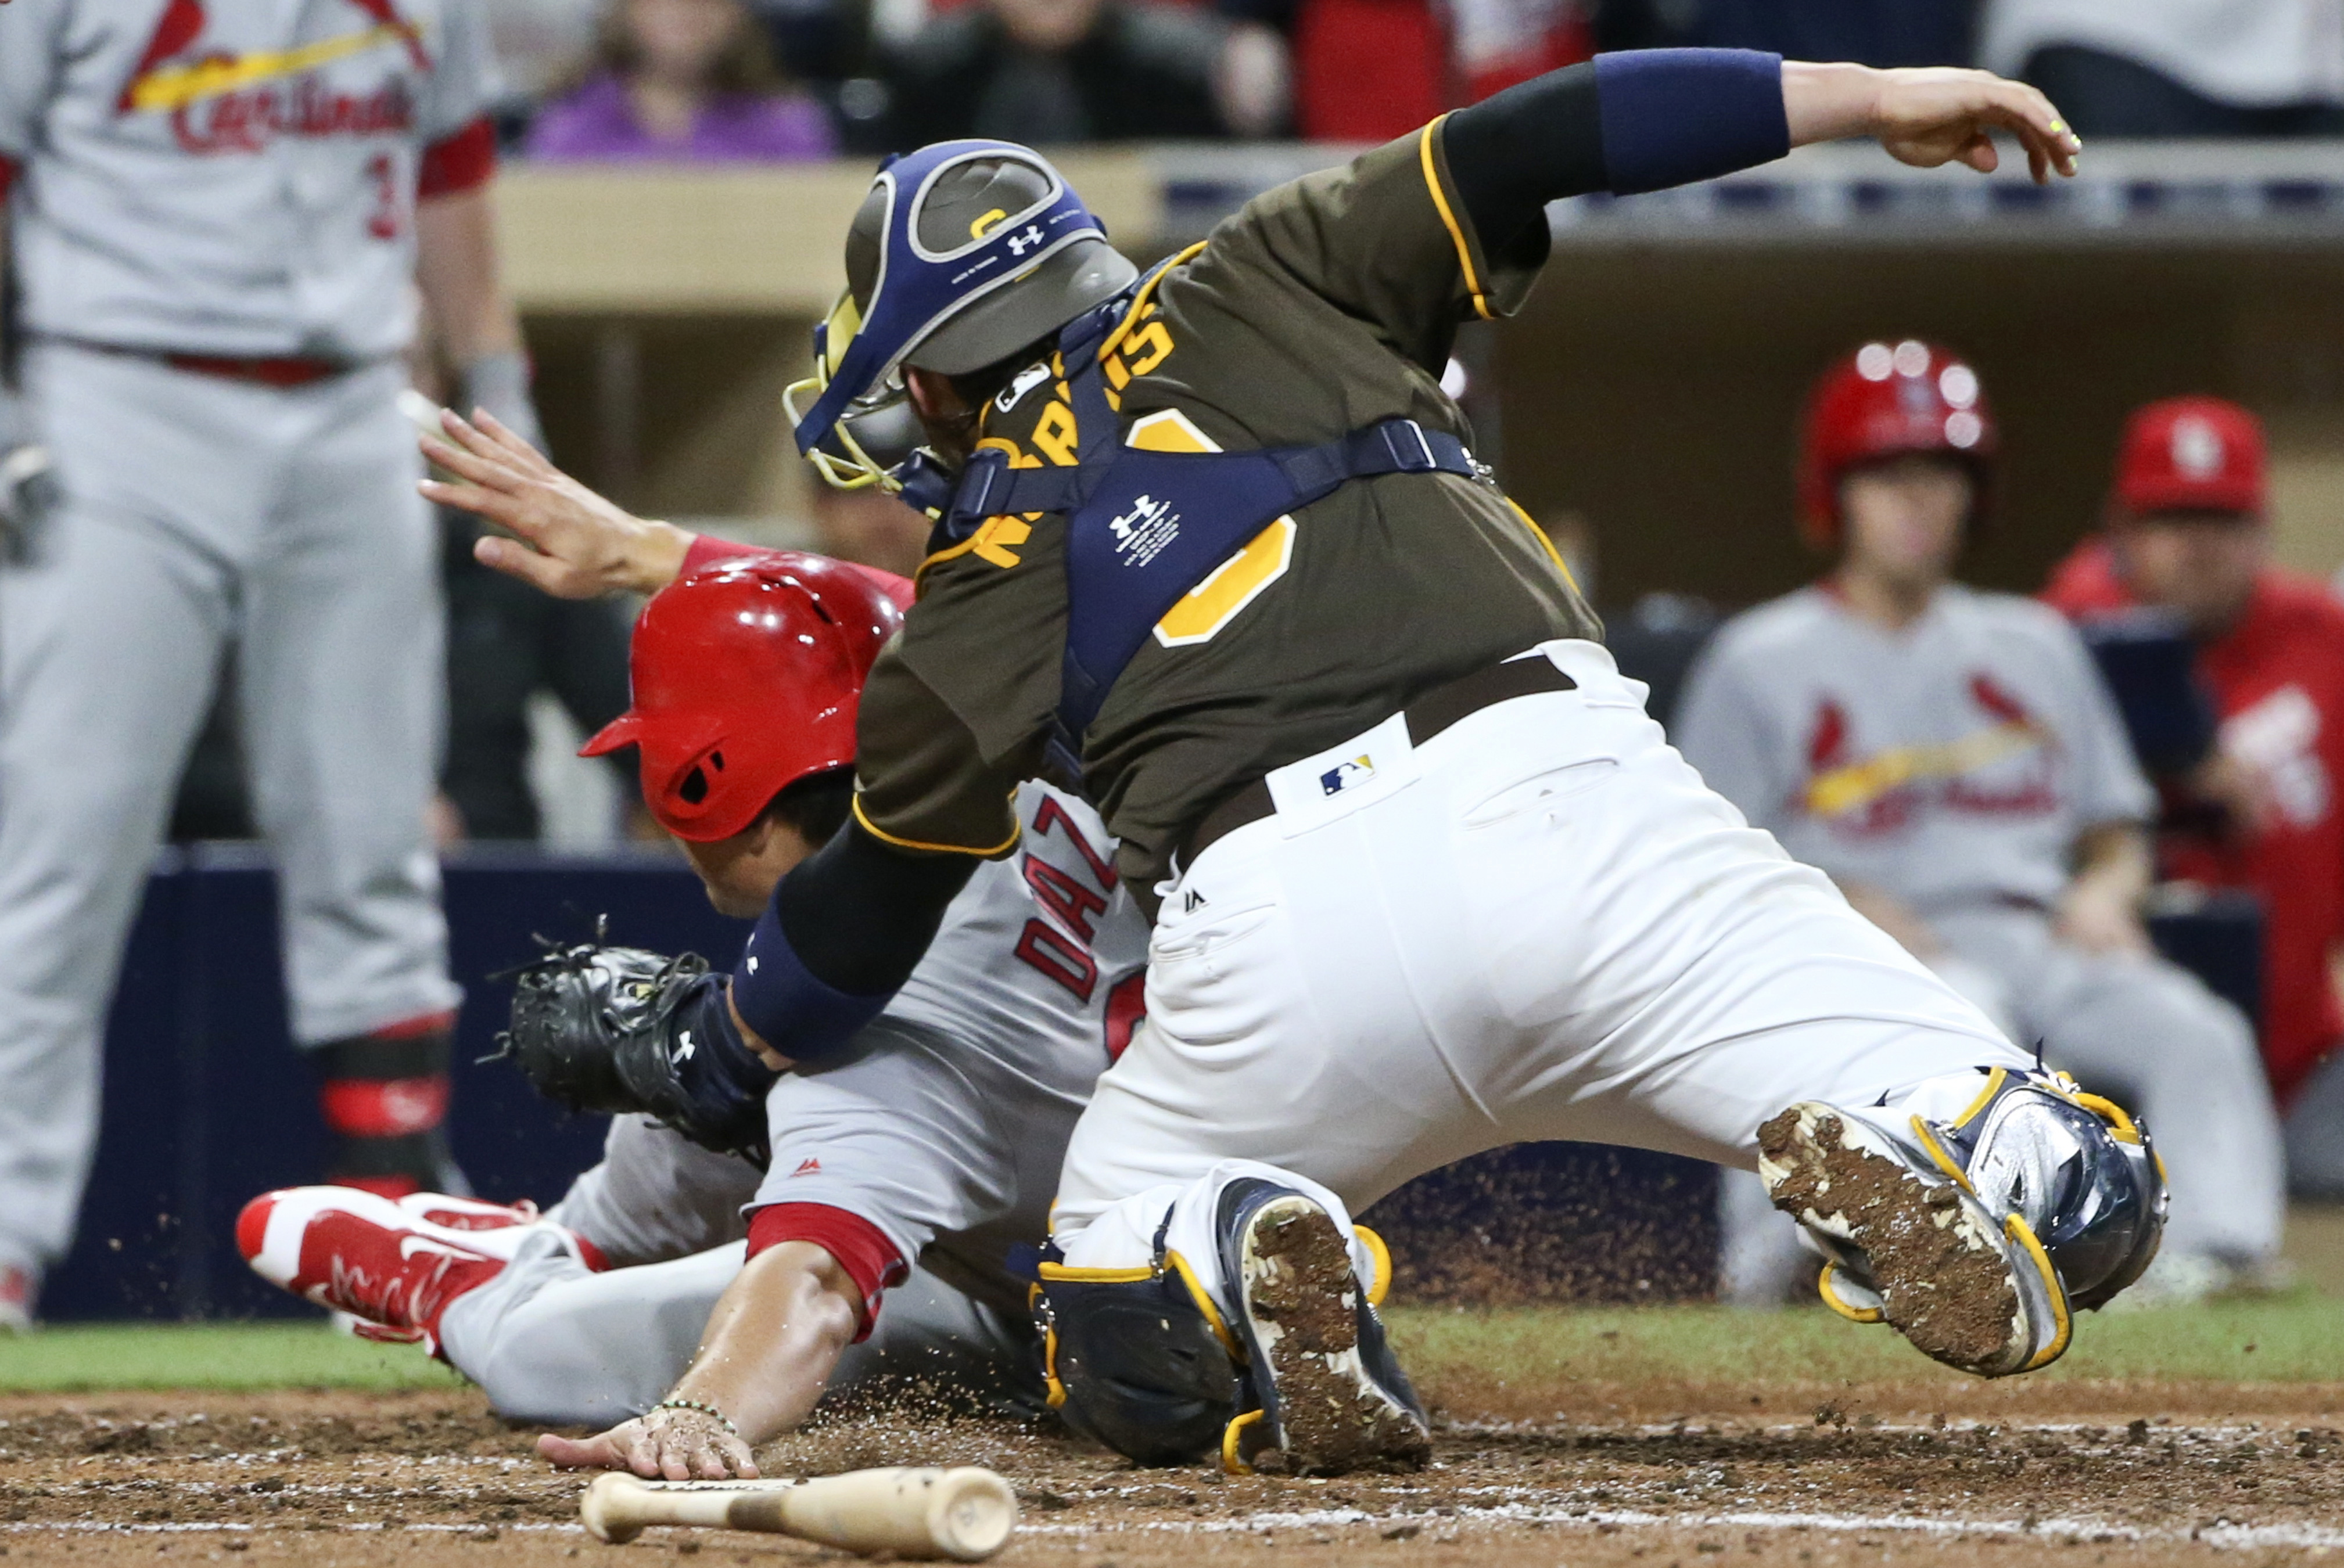 St. Louis Cardinals' Aledmys Diazis is tagged out at home by San Diego Padres catcher Derek Norris during the seventh inning of a baseball game Friday, April 22, 2016, in San Diego. (AP Photo/Lenny Ignelzi)